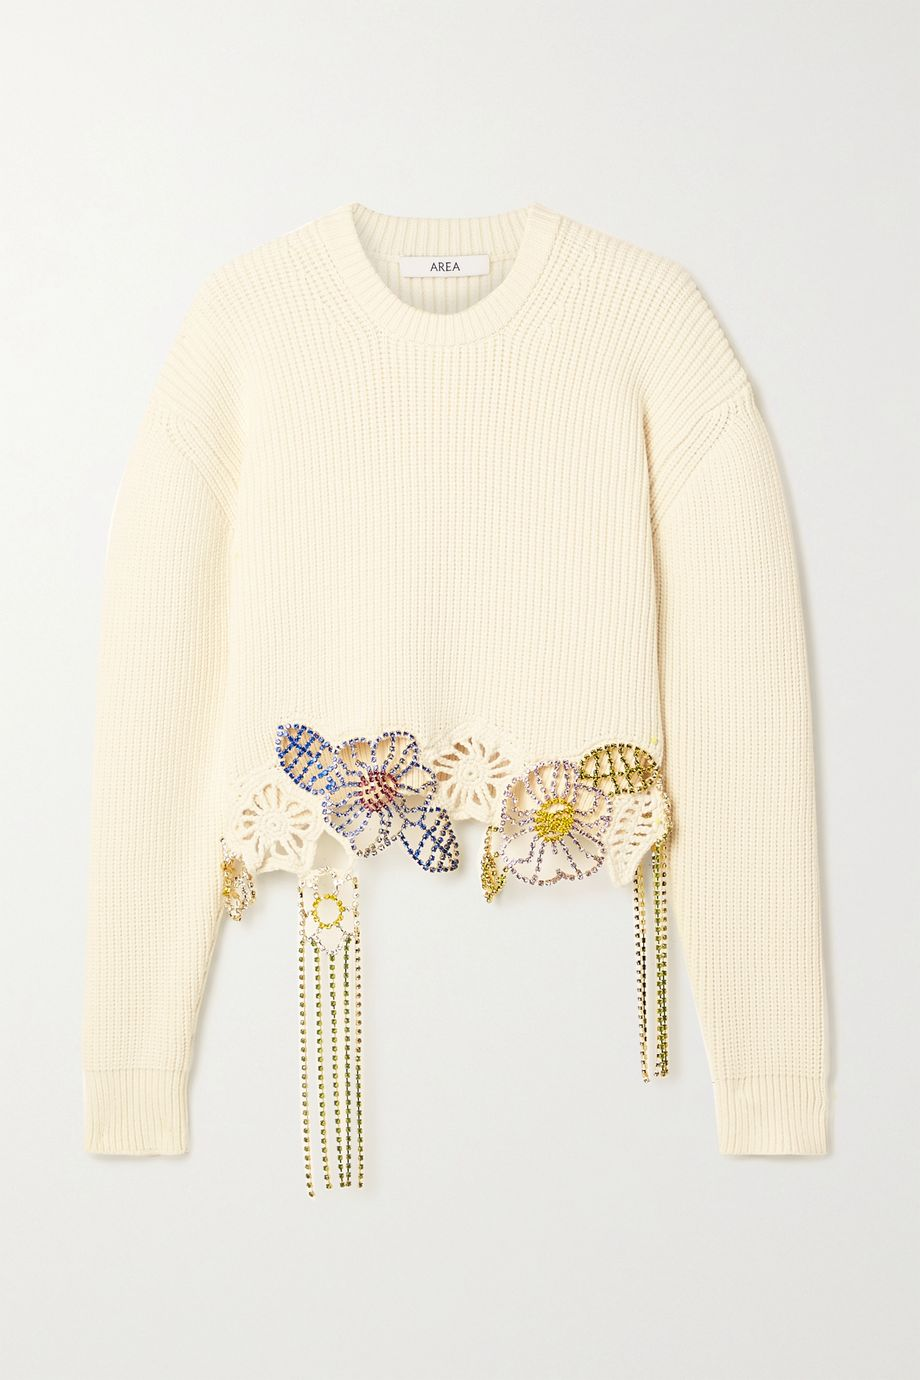 AREA Cropped crystal-embellished ribbed cotton-blend sweater